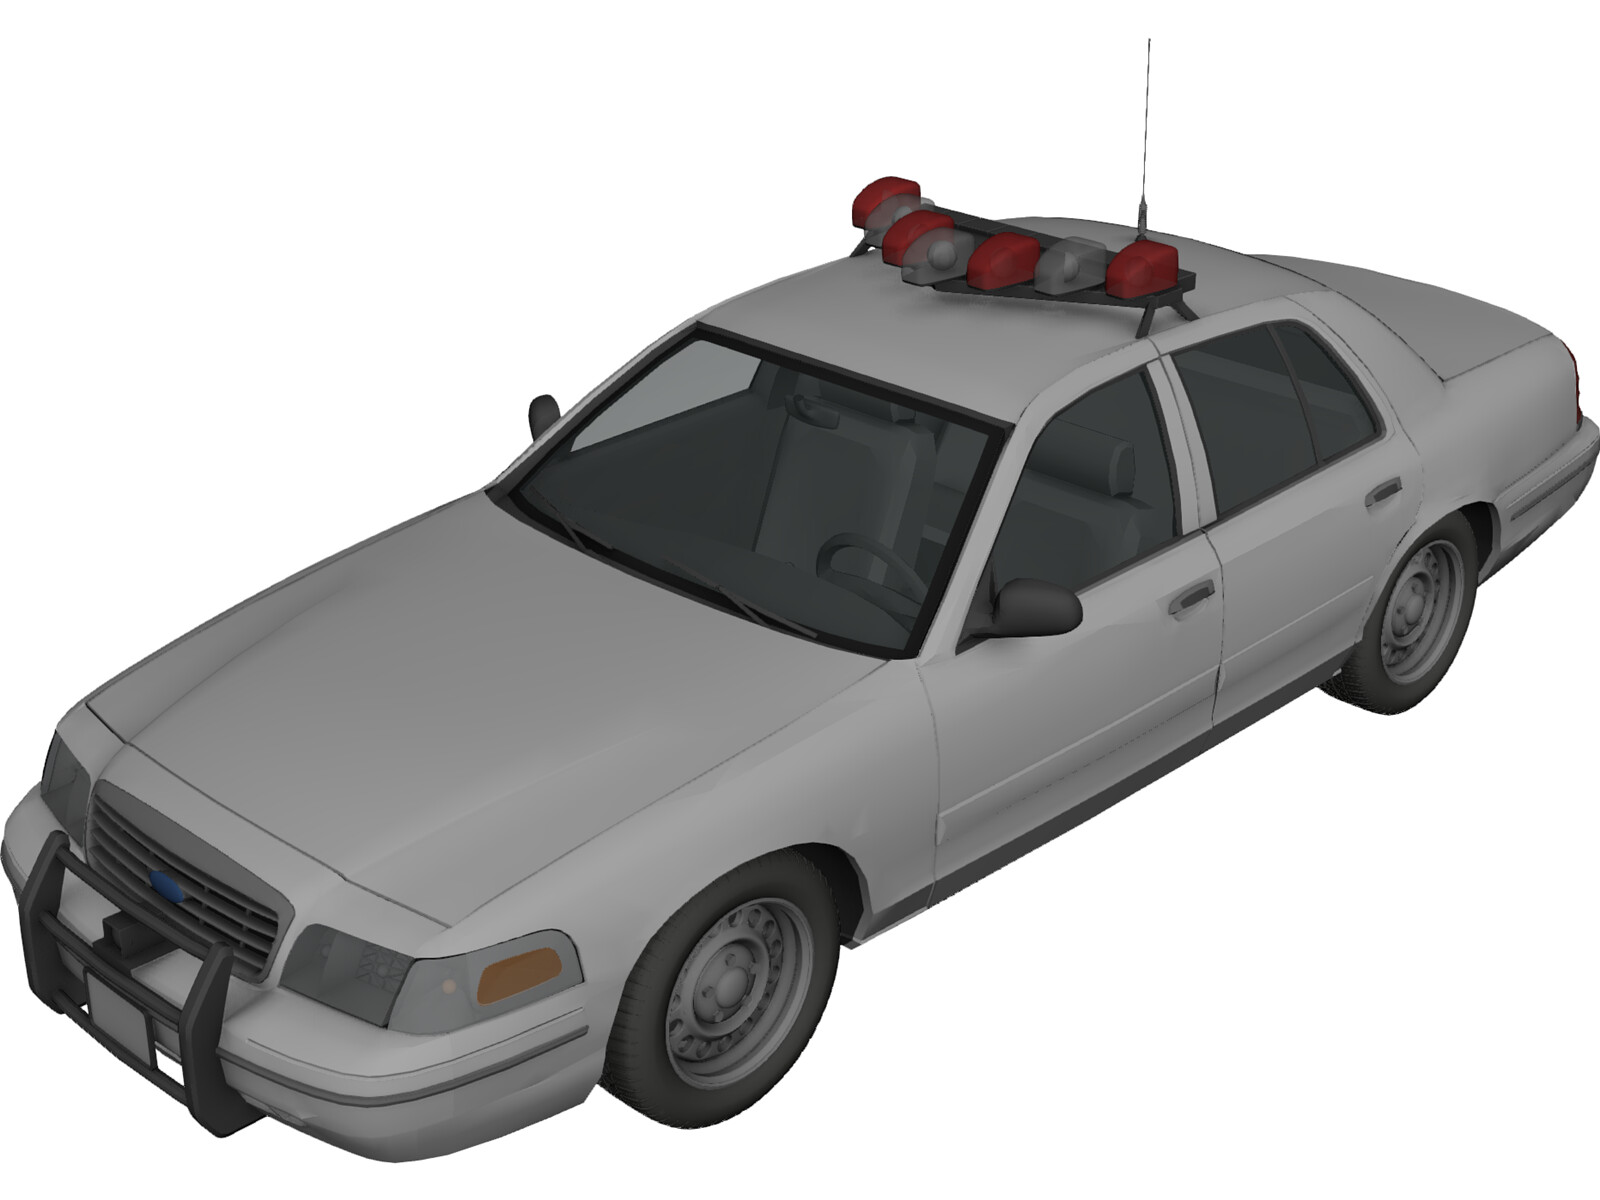 Ford Crown Victoria NYPD Police Interceptor 3D Model